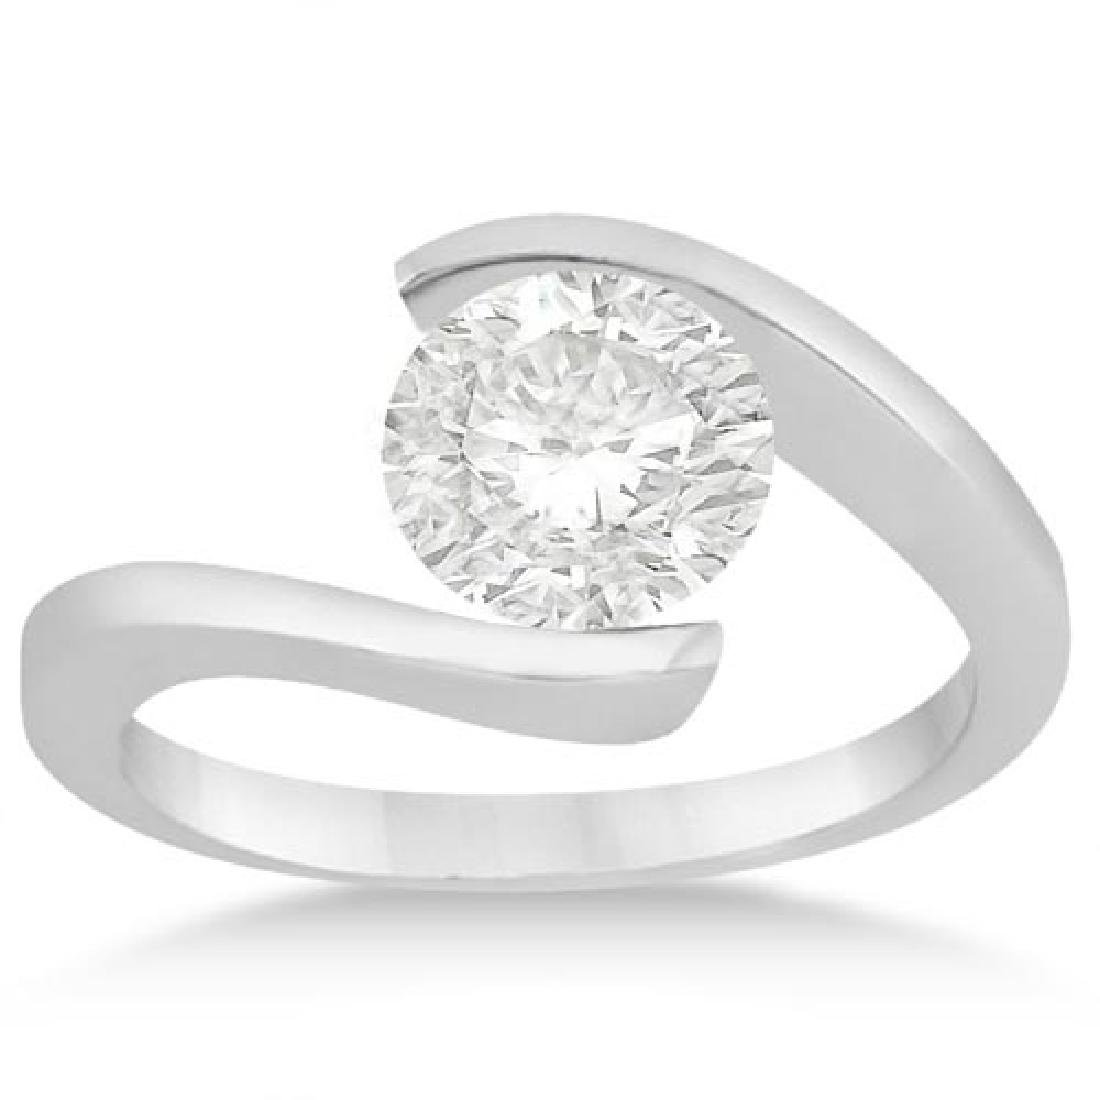 Tension Set Swirl Solitaire Diamond Engagement Ring